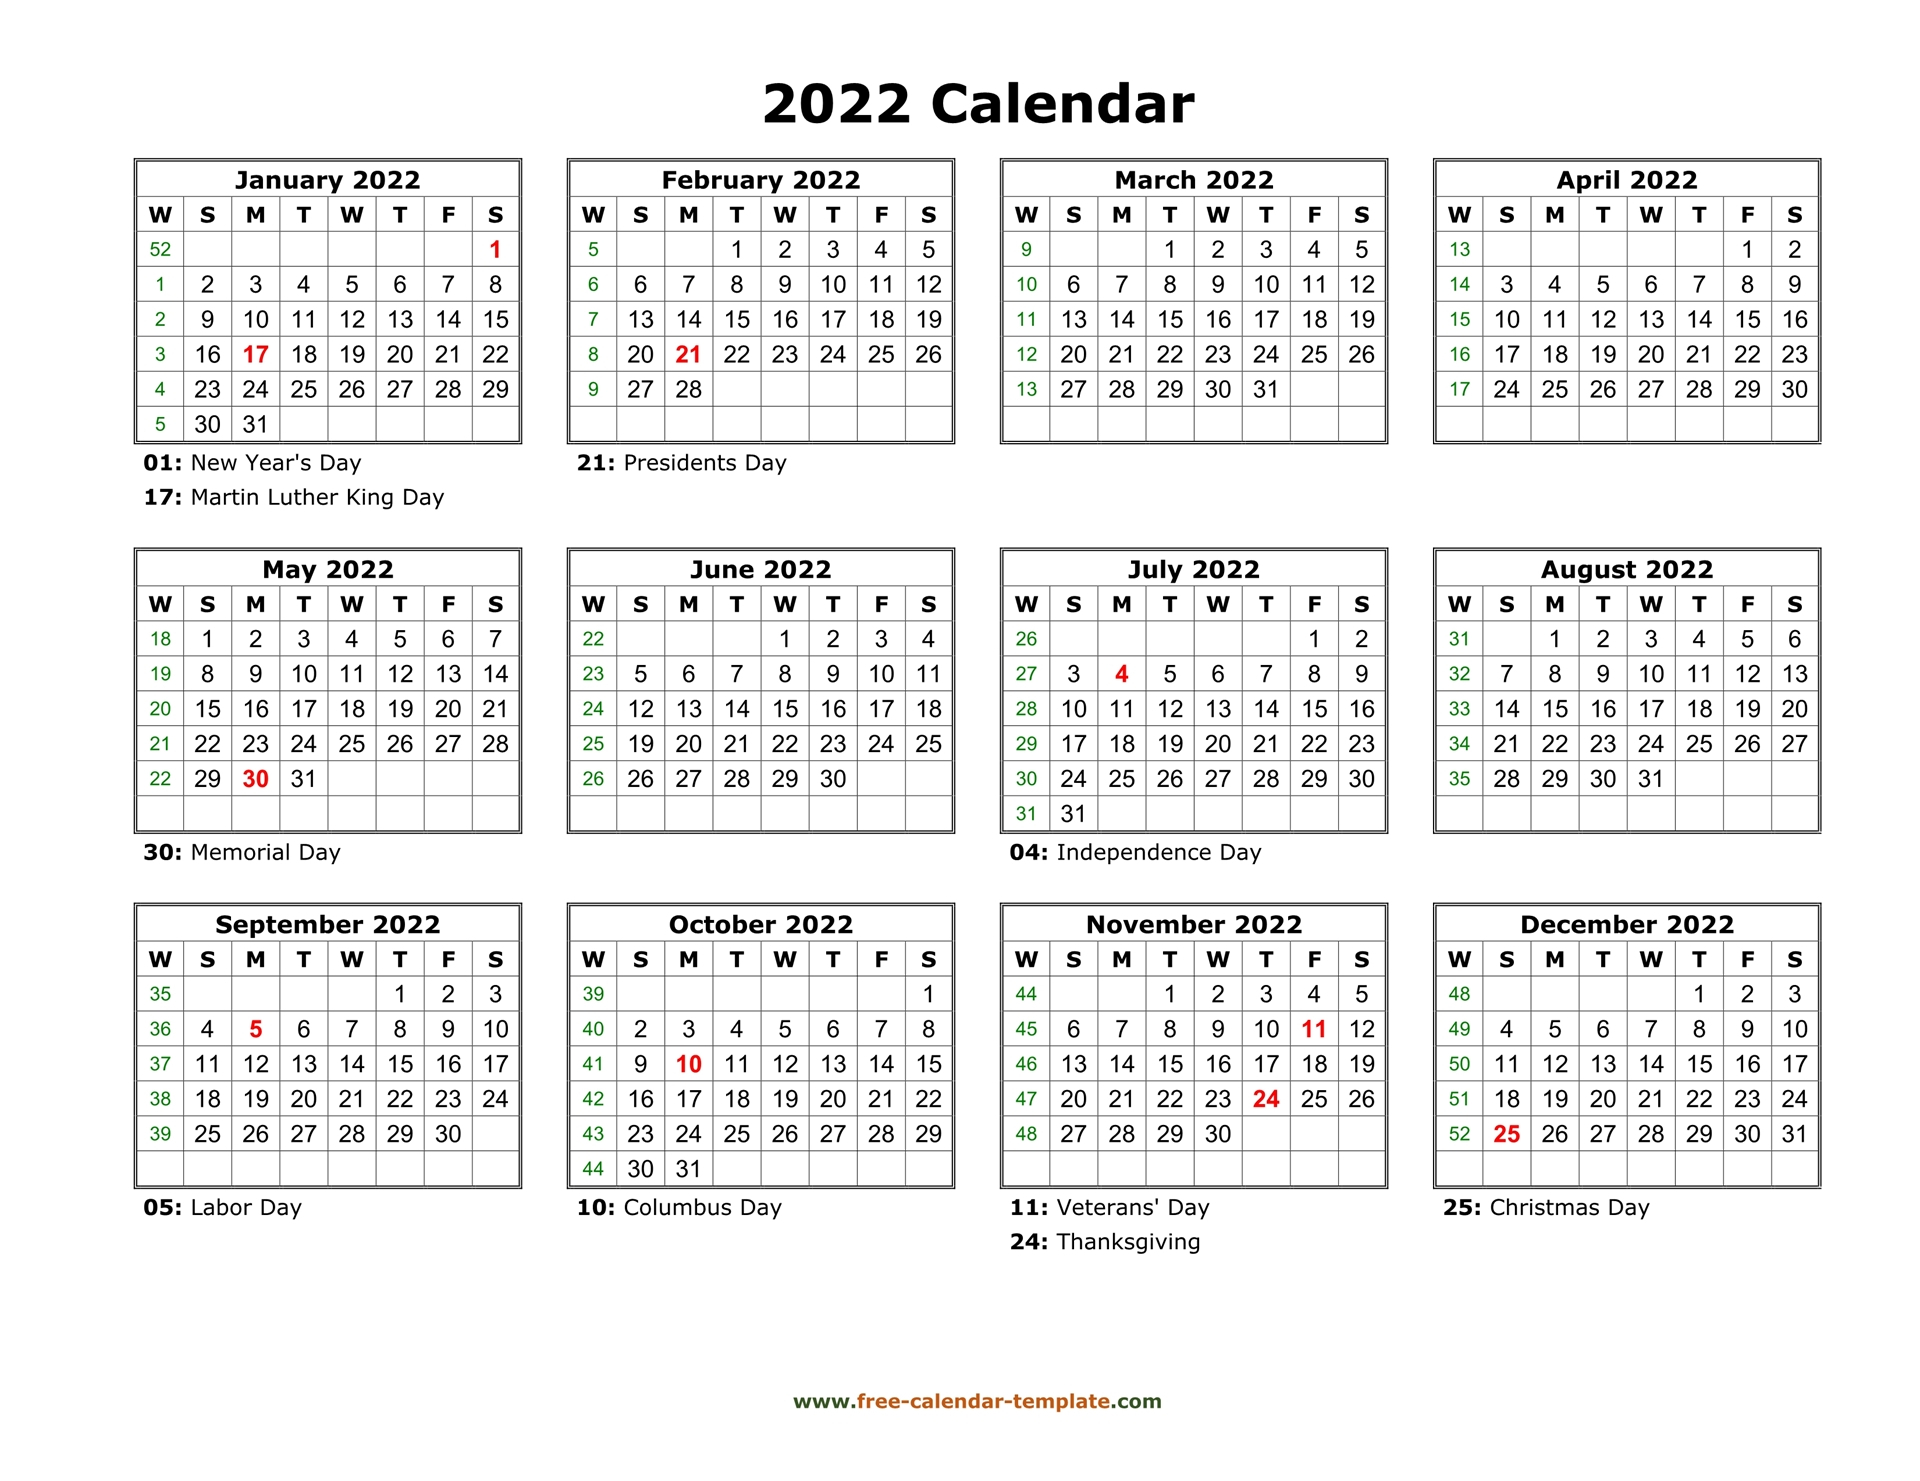 Yearly Calendar 2022 Printable With Federal Holidays Within Free Printable Calendar Templates January 2022